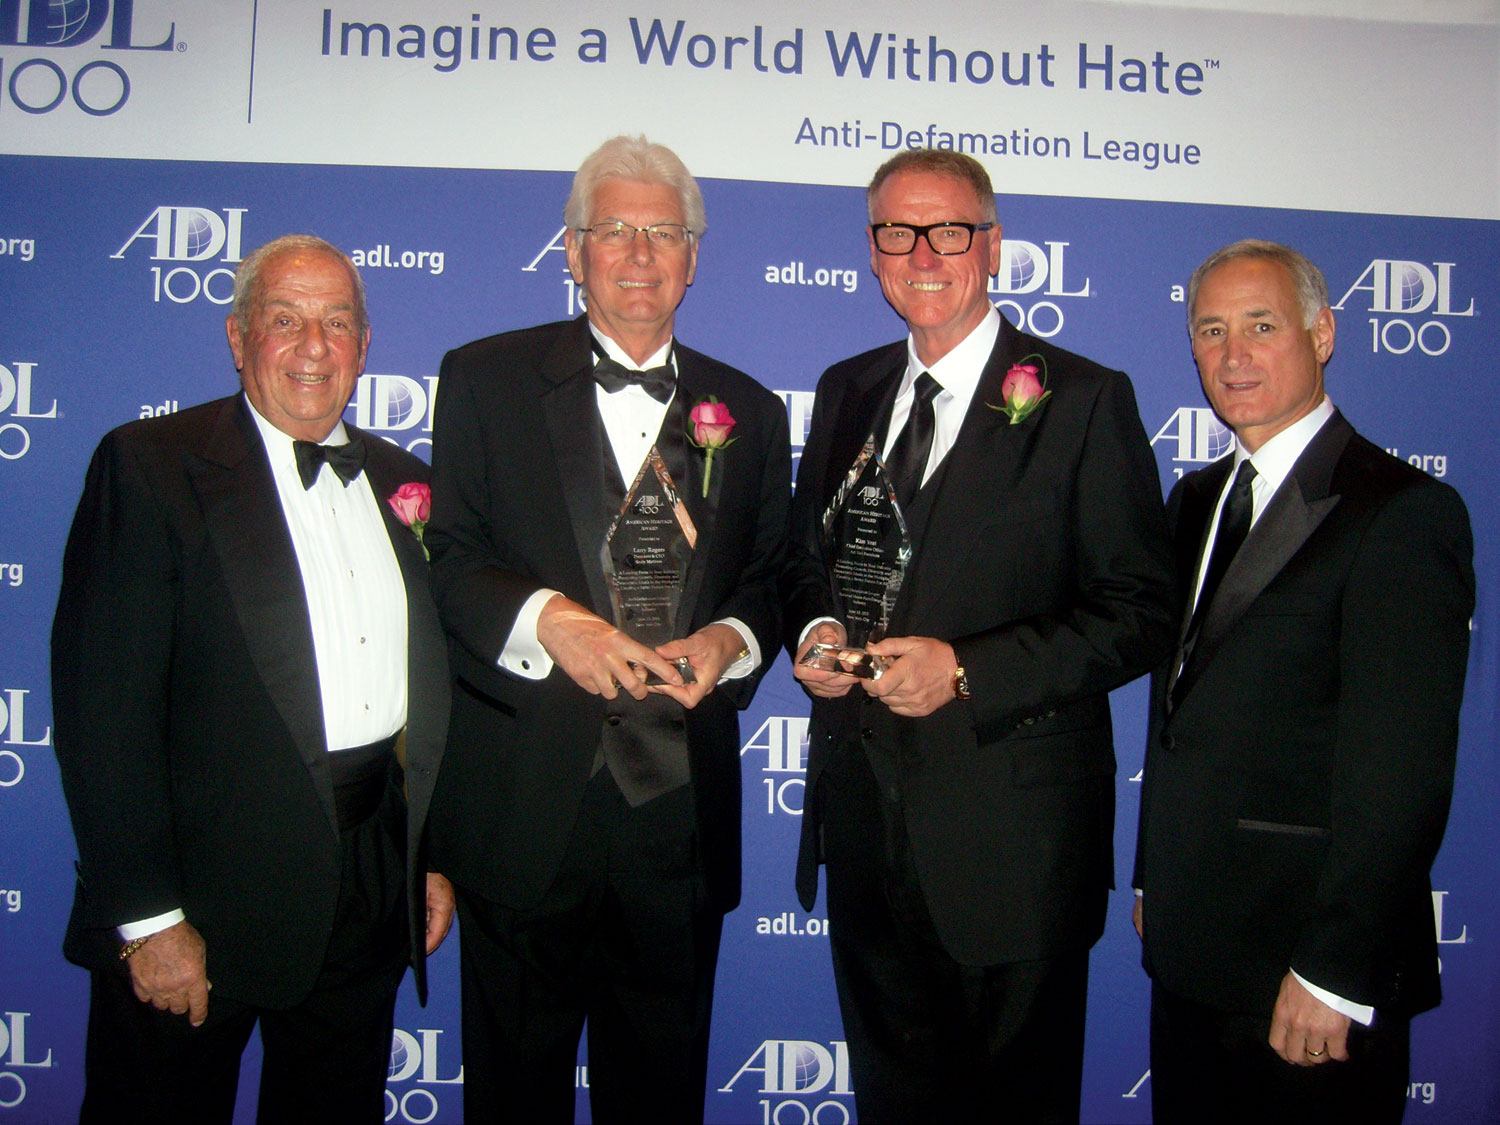 Norman Waxman, left, Norman Waxman LLC; ADL honorees Larry Rogers, Sealy, and Kim Yost, Art Van Furniture, Warren, Mich.; and Neil Goldberg, Raymour & Flanigan, Liverpool, N.Y.